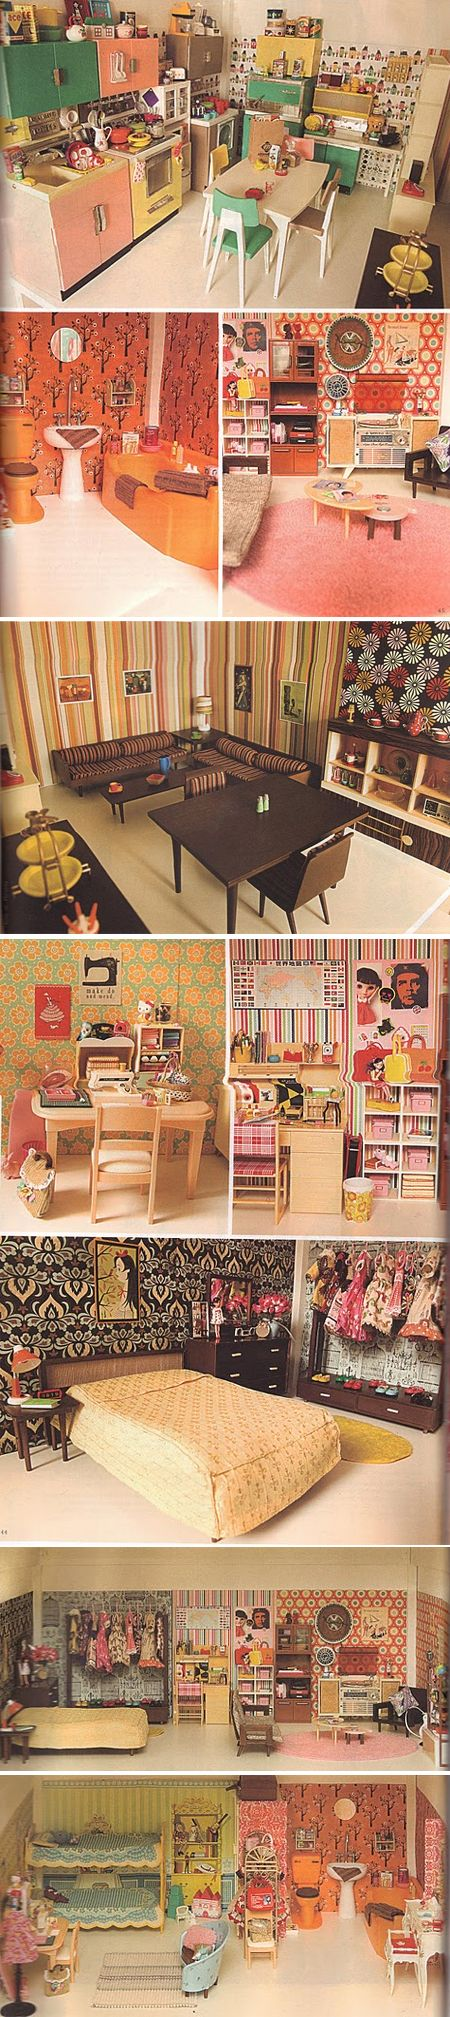 Hip Seventies Dollhouse.  Fantastic Wallpaper and Mid-Century Furniture.  georgiasmith